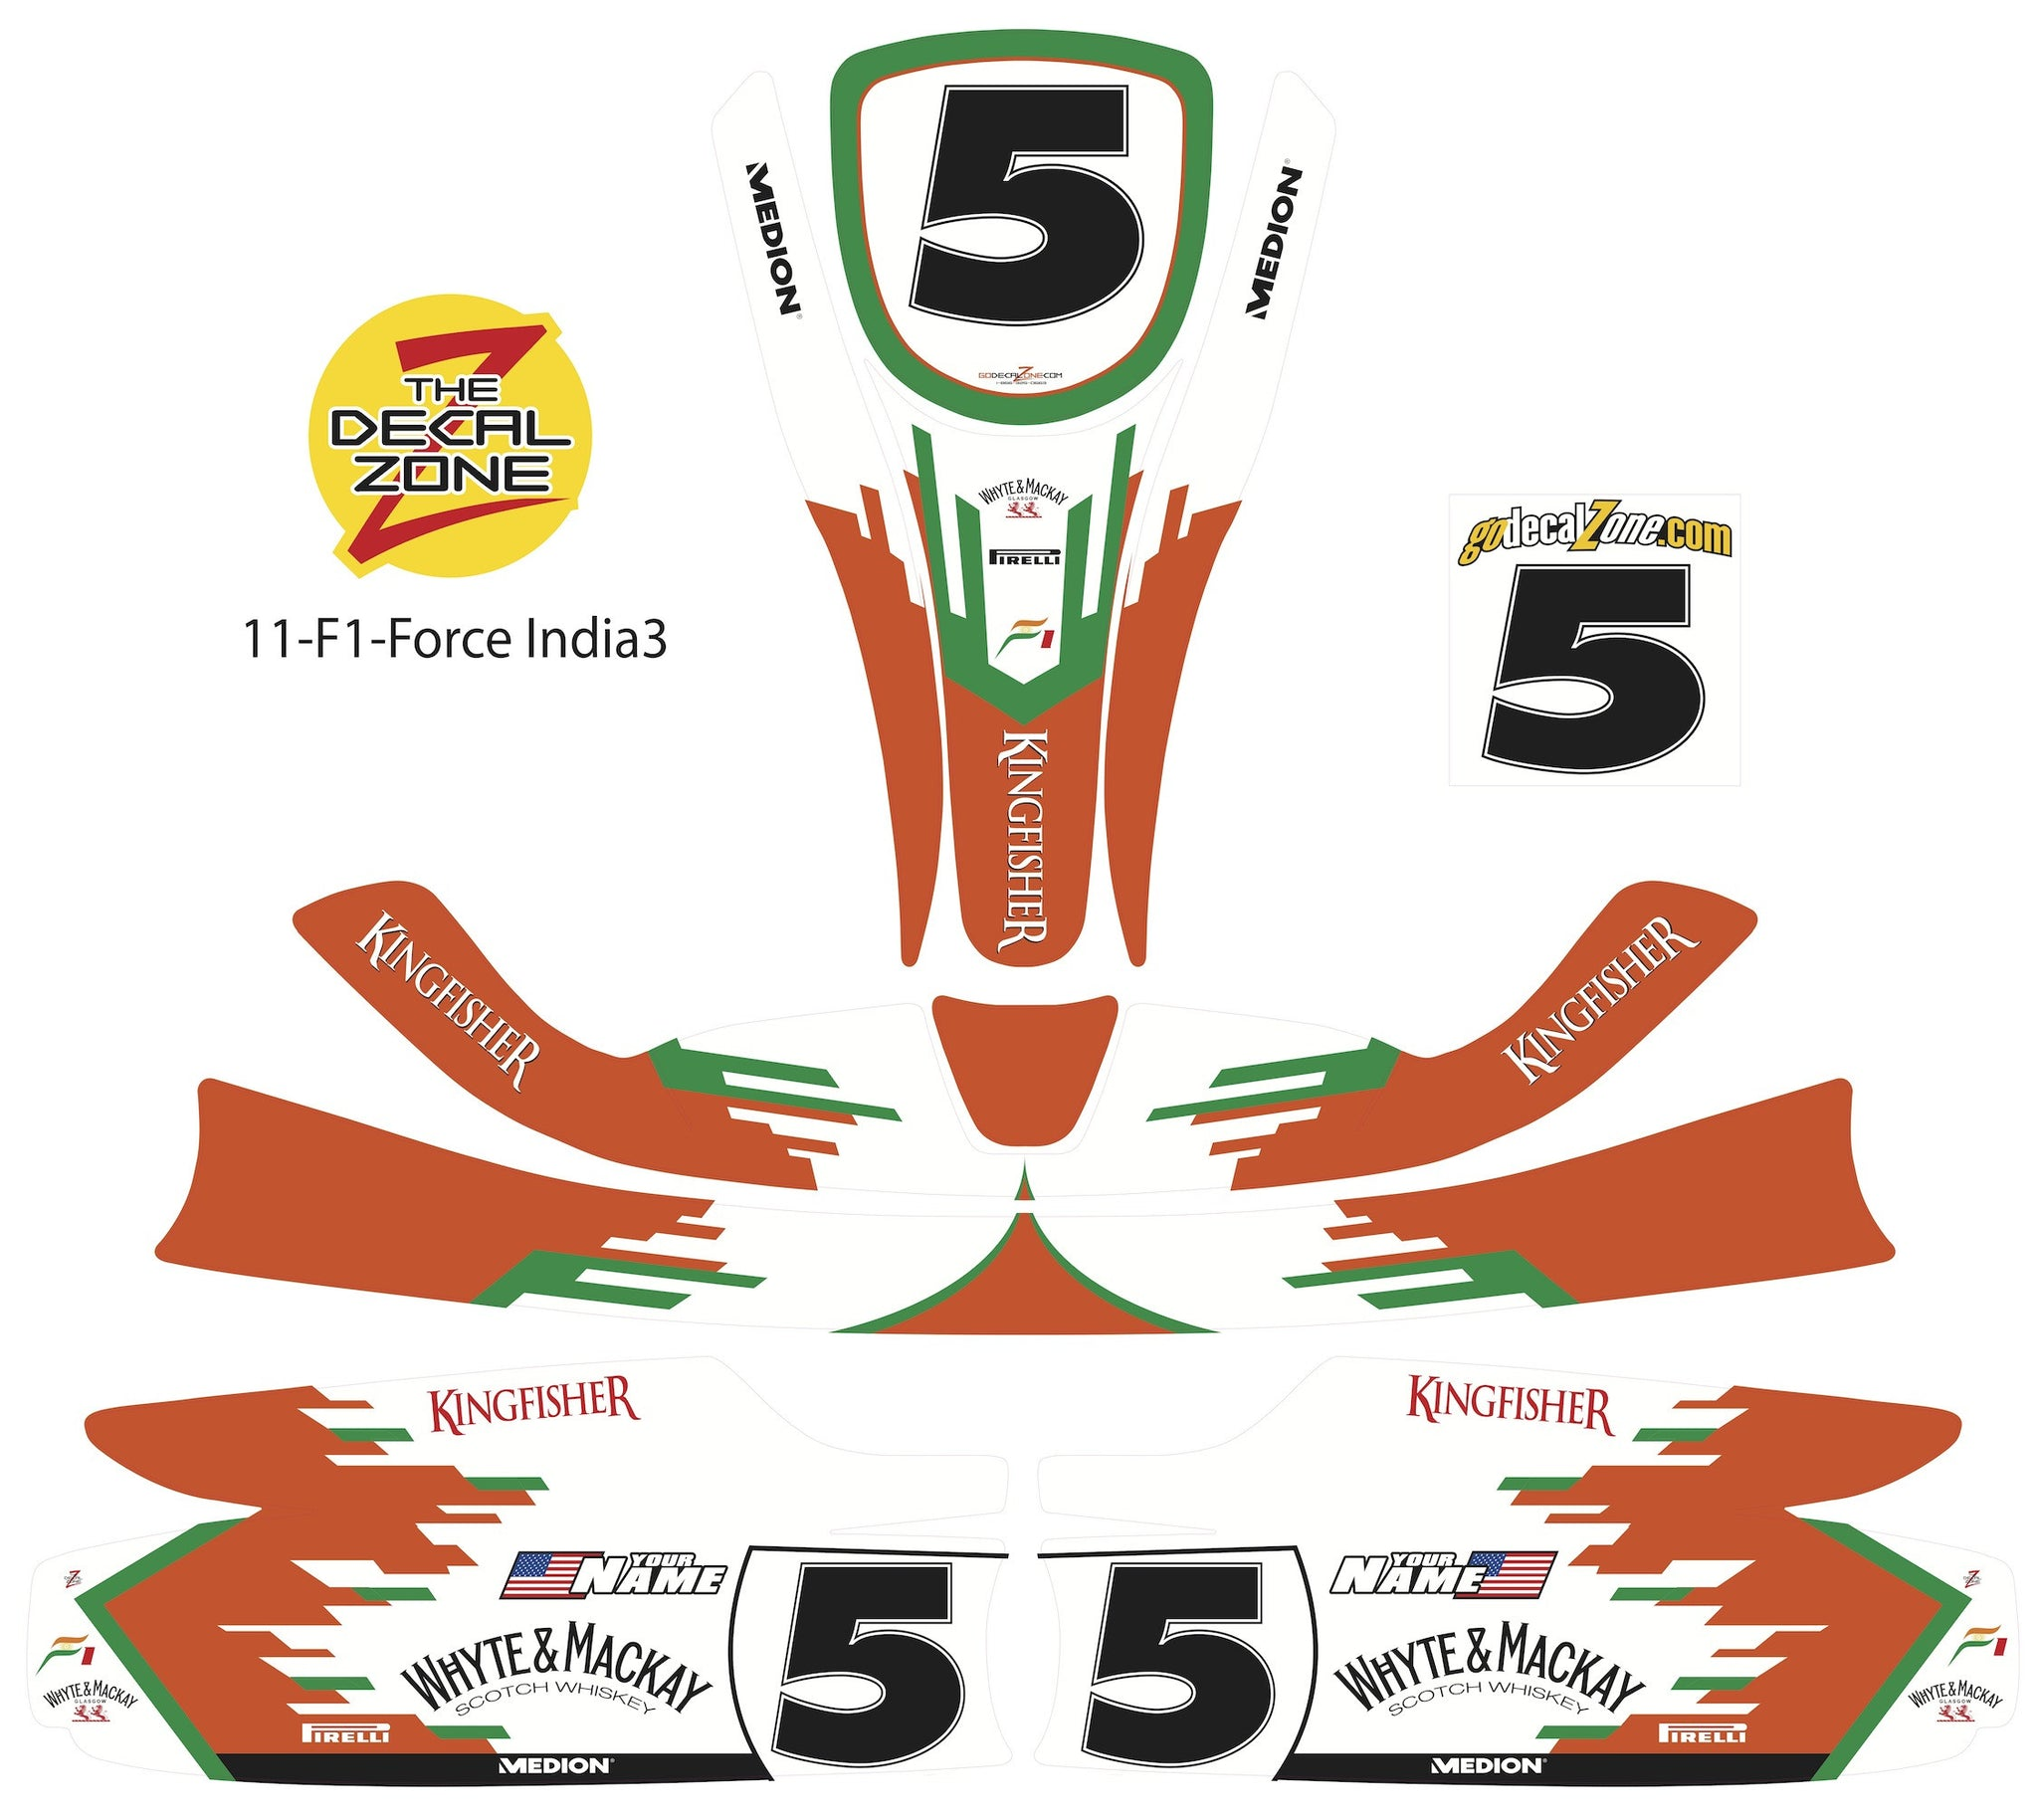 11-F1-FORCE INDIA3